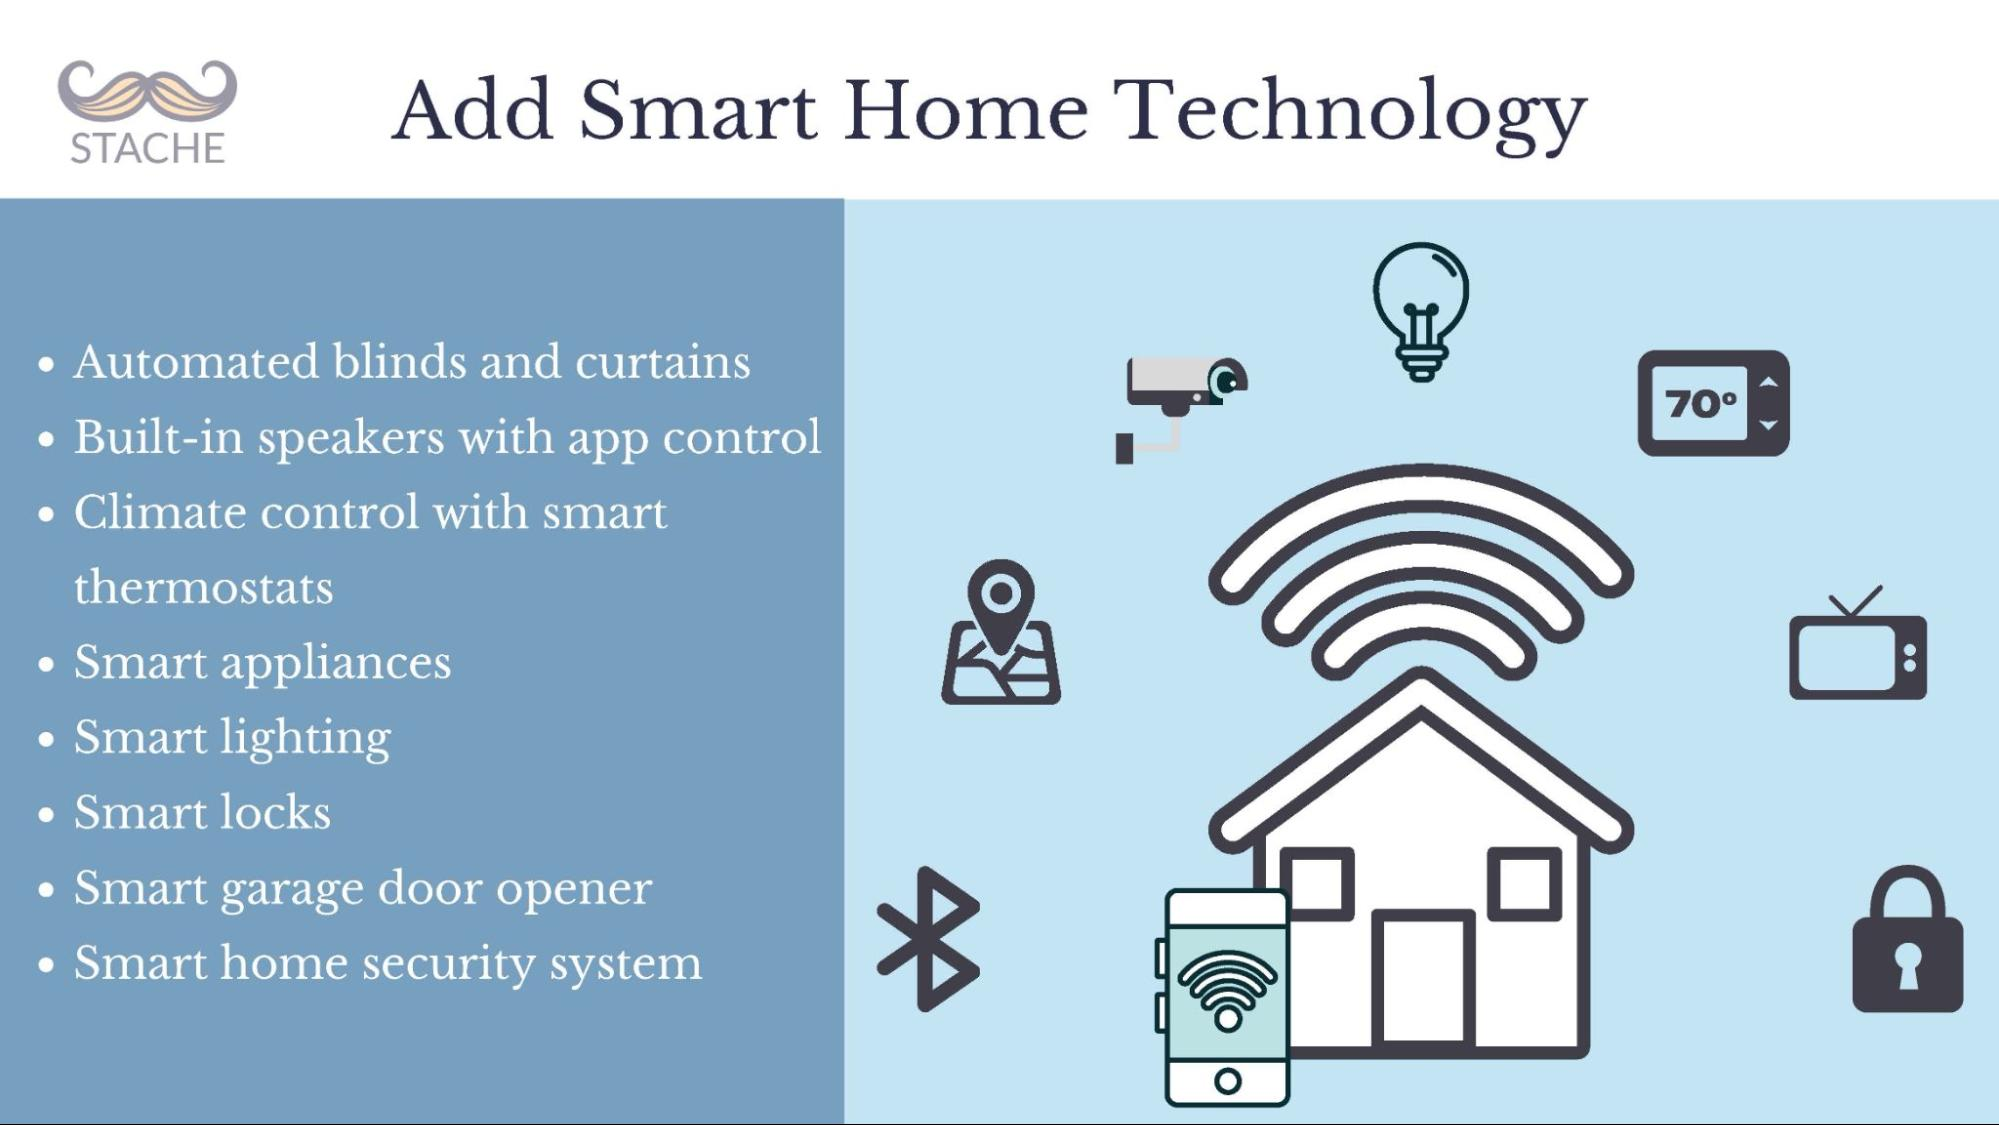 add smart home technology to your home